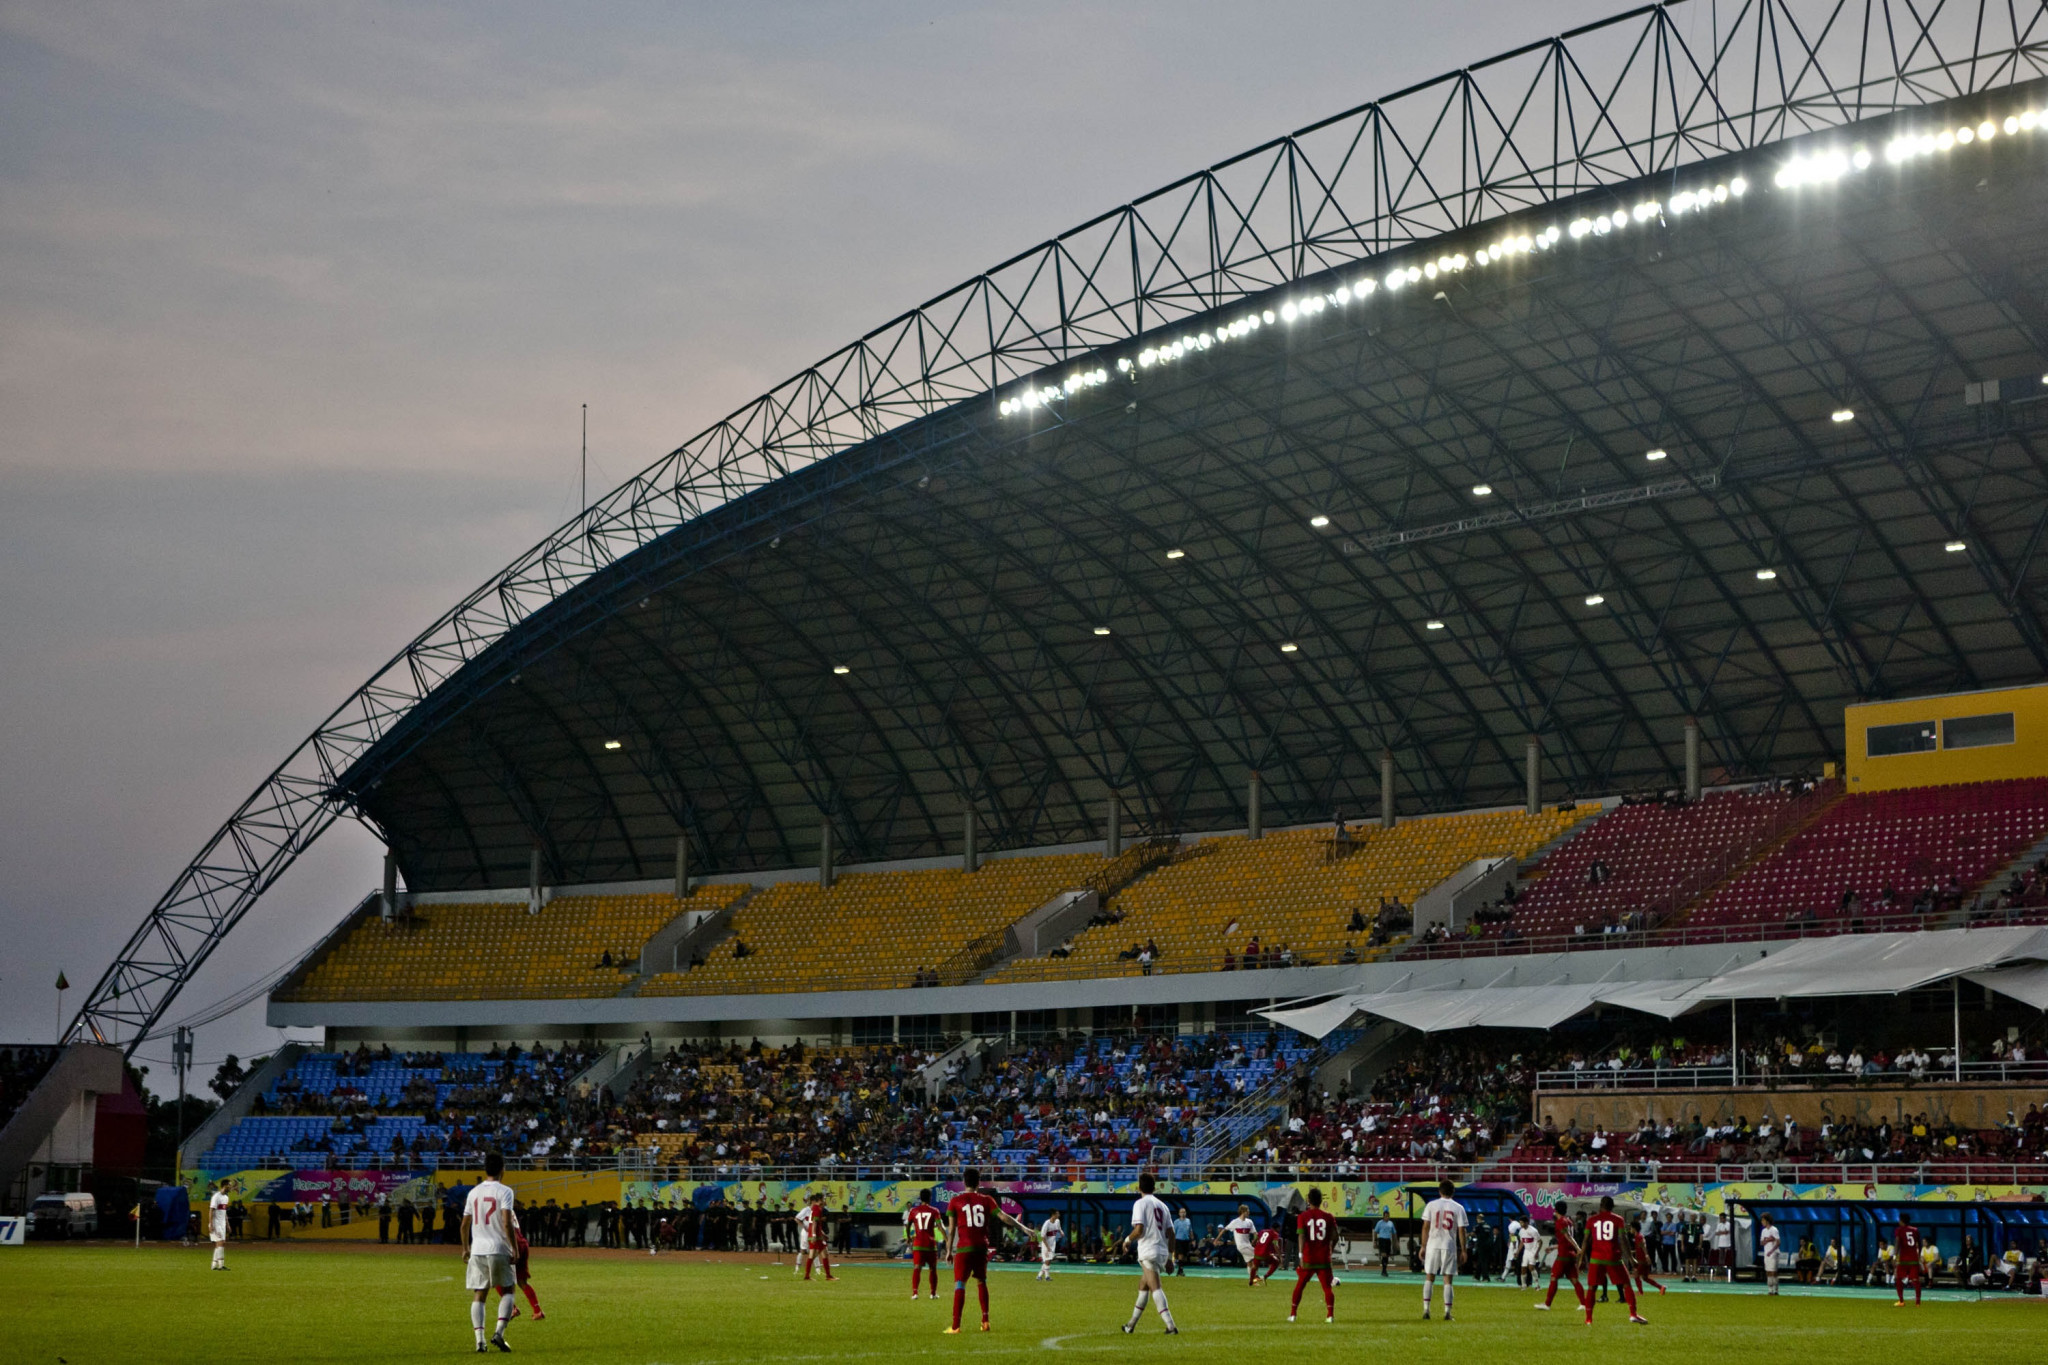 Palembang hosted the 2013 Islamic Solidarity Games ©Getty Images